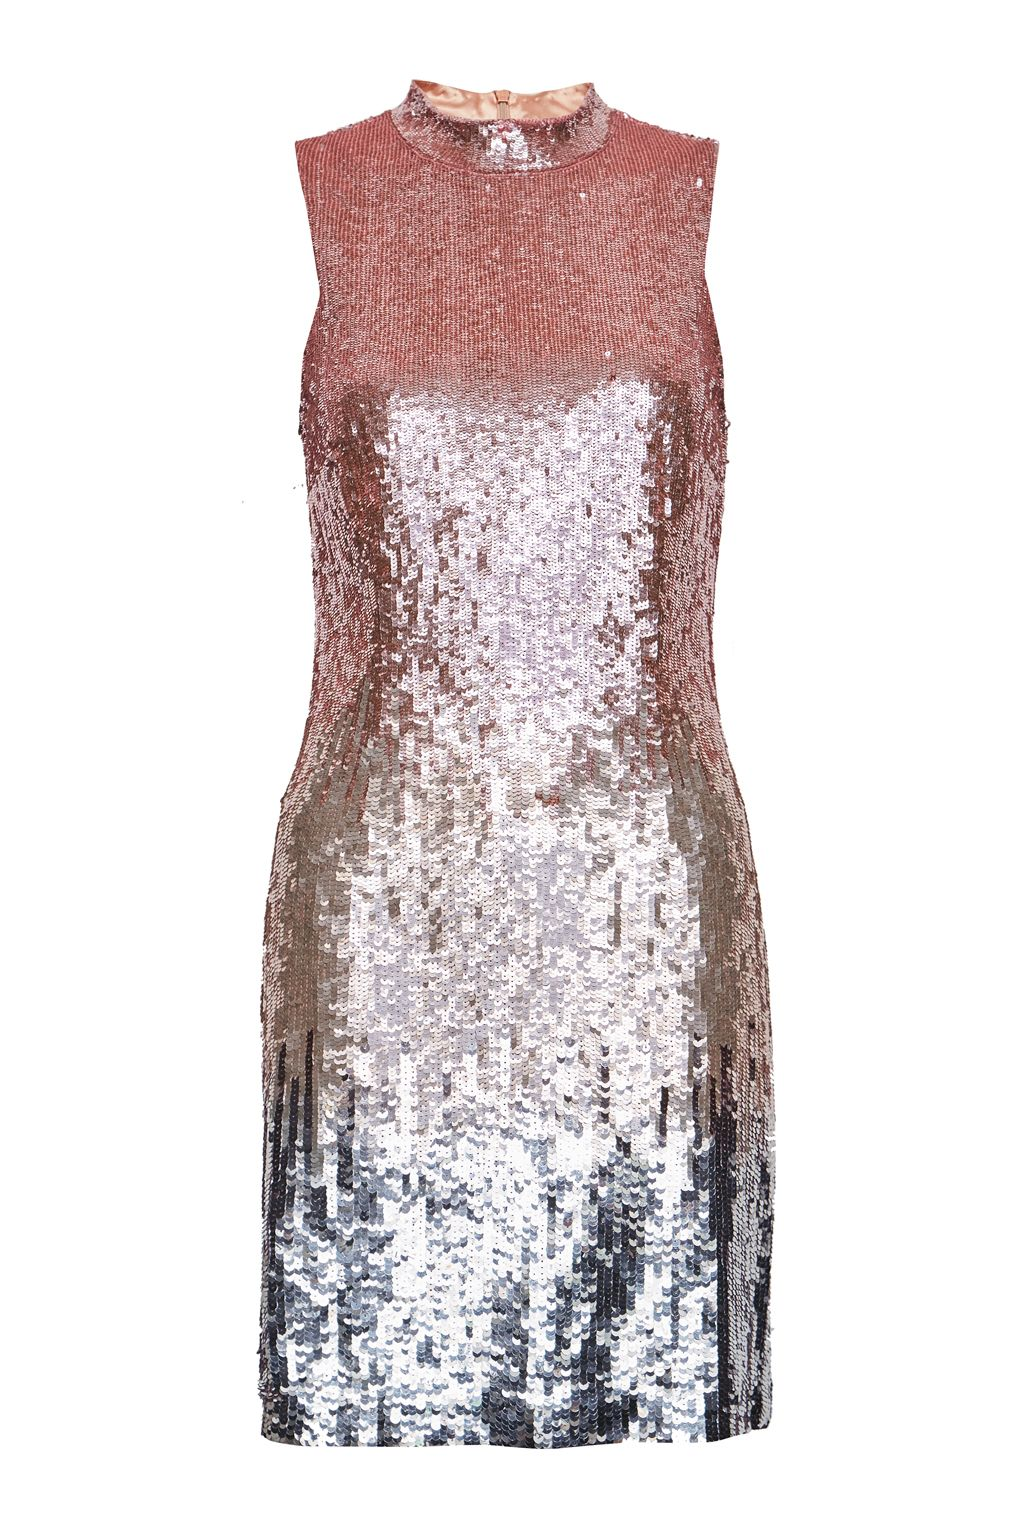 French Connection Starlight Sequins Mock Neck Mini Dress, Pink